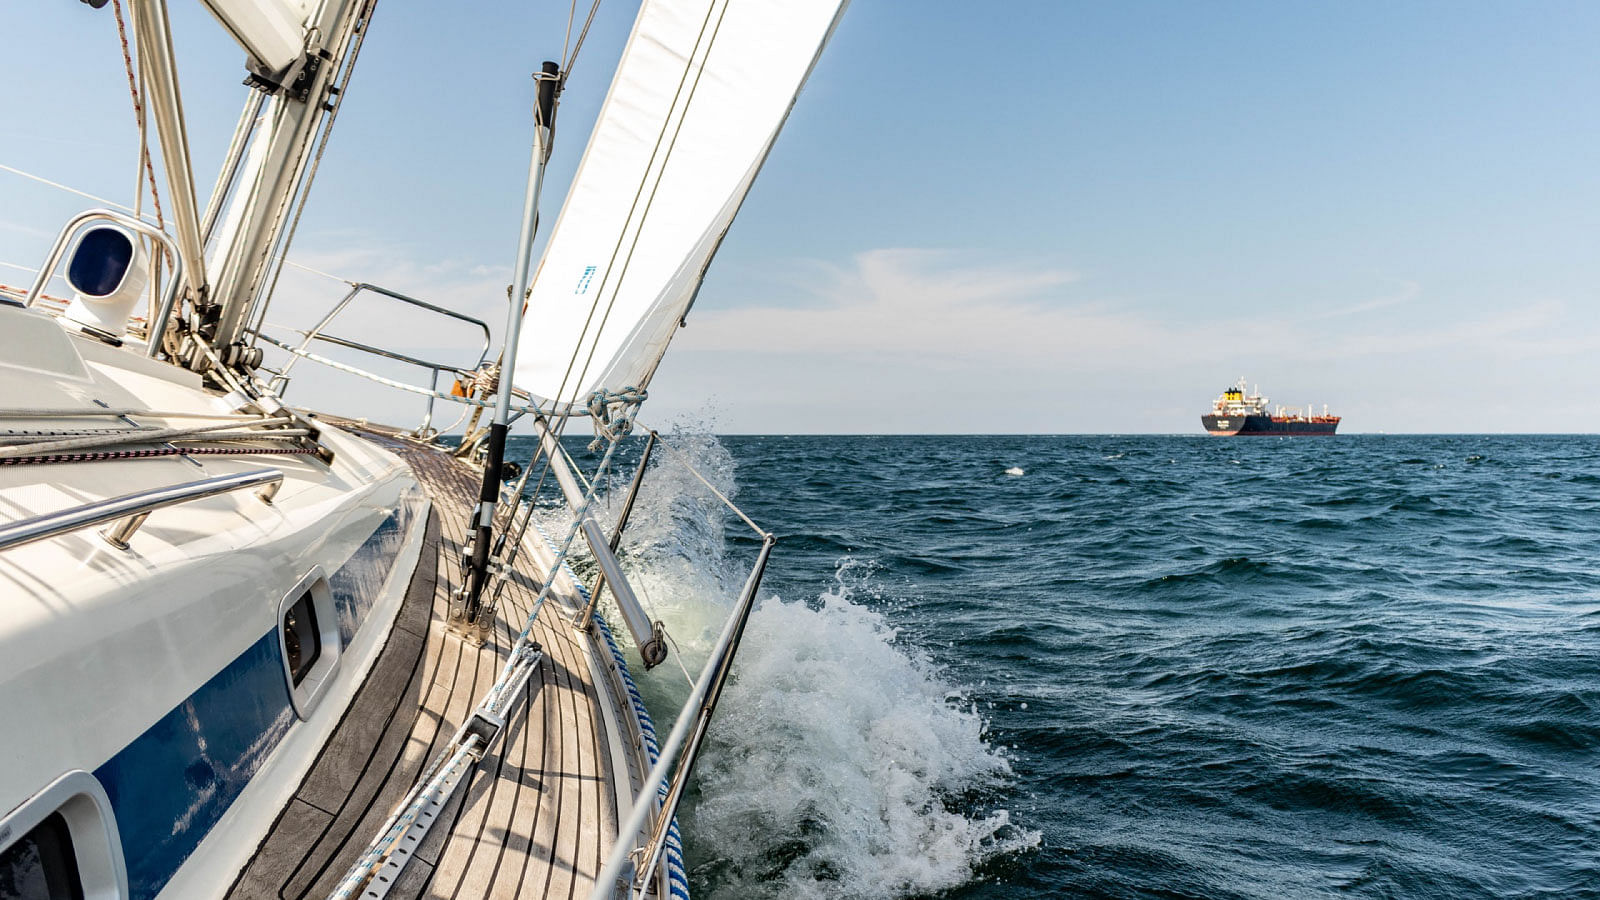 Boat activities on Cote d'Azur - boat charters - yacht rental - hire catamaran - rental boats - motorboat - FranceRent